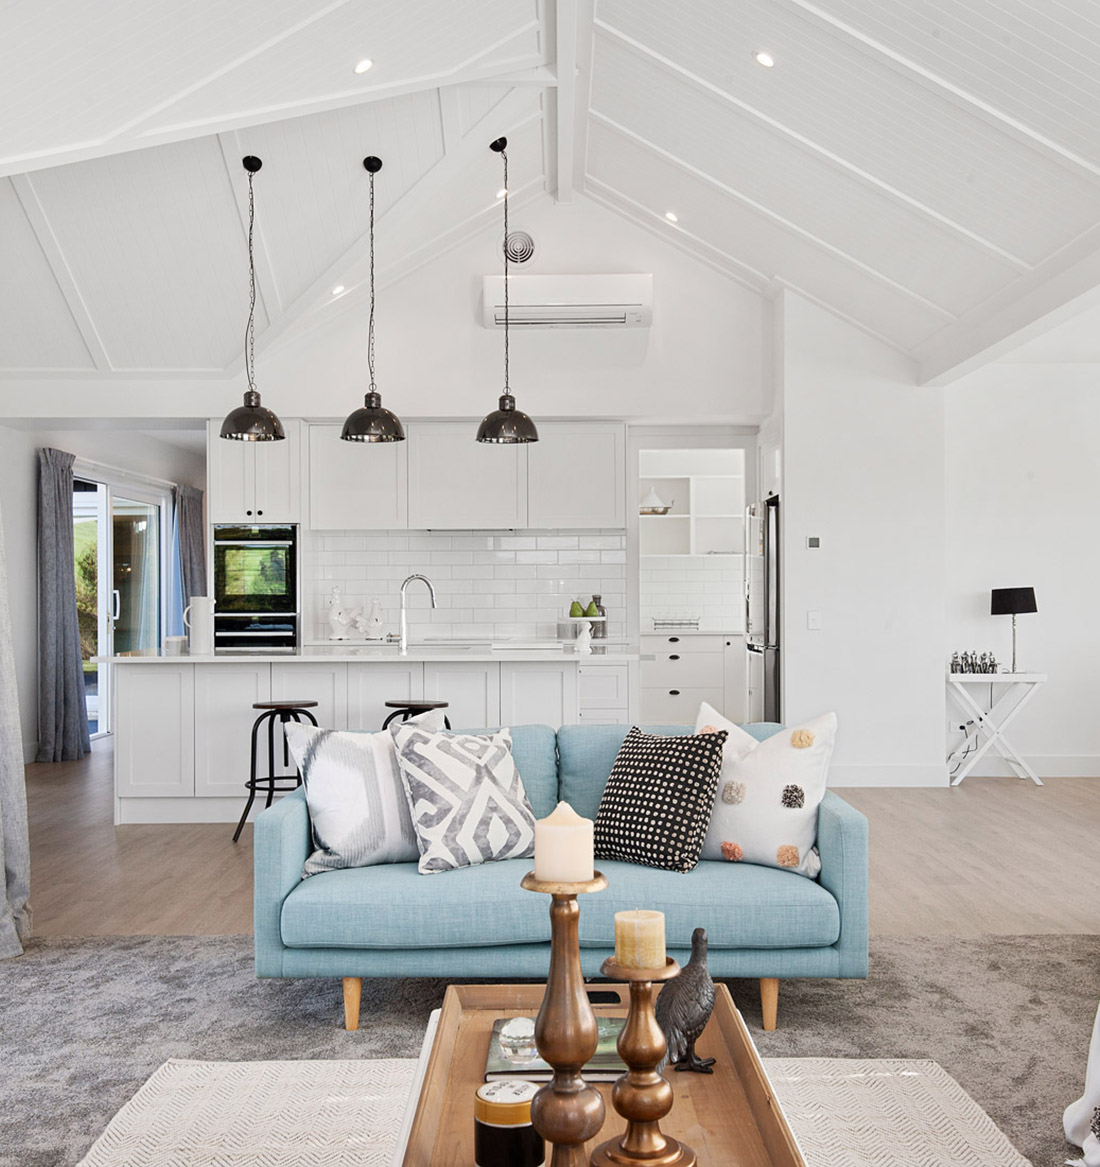 Taupo house builders harrier lane living room